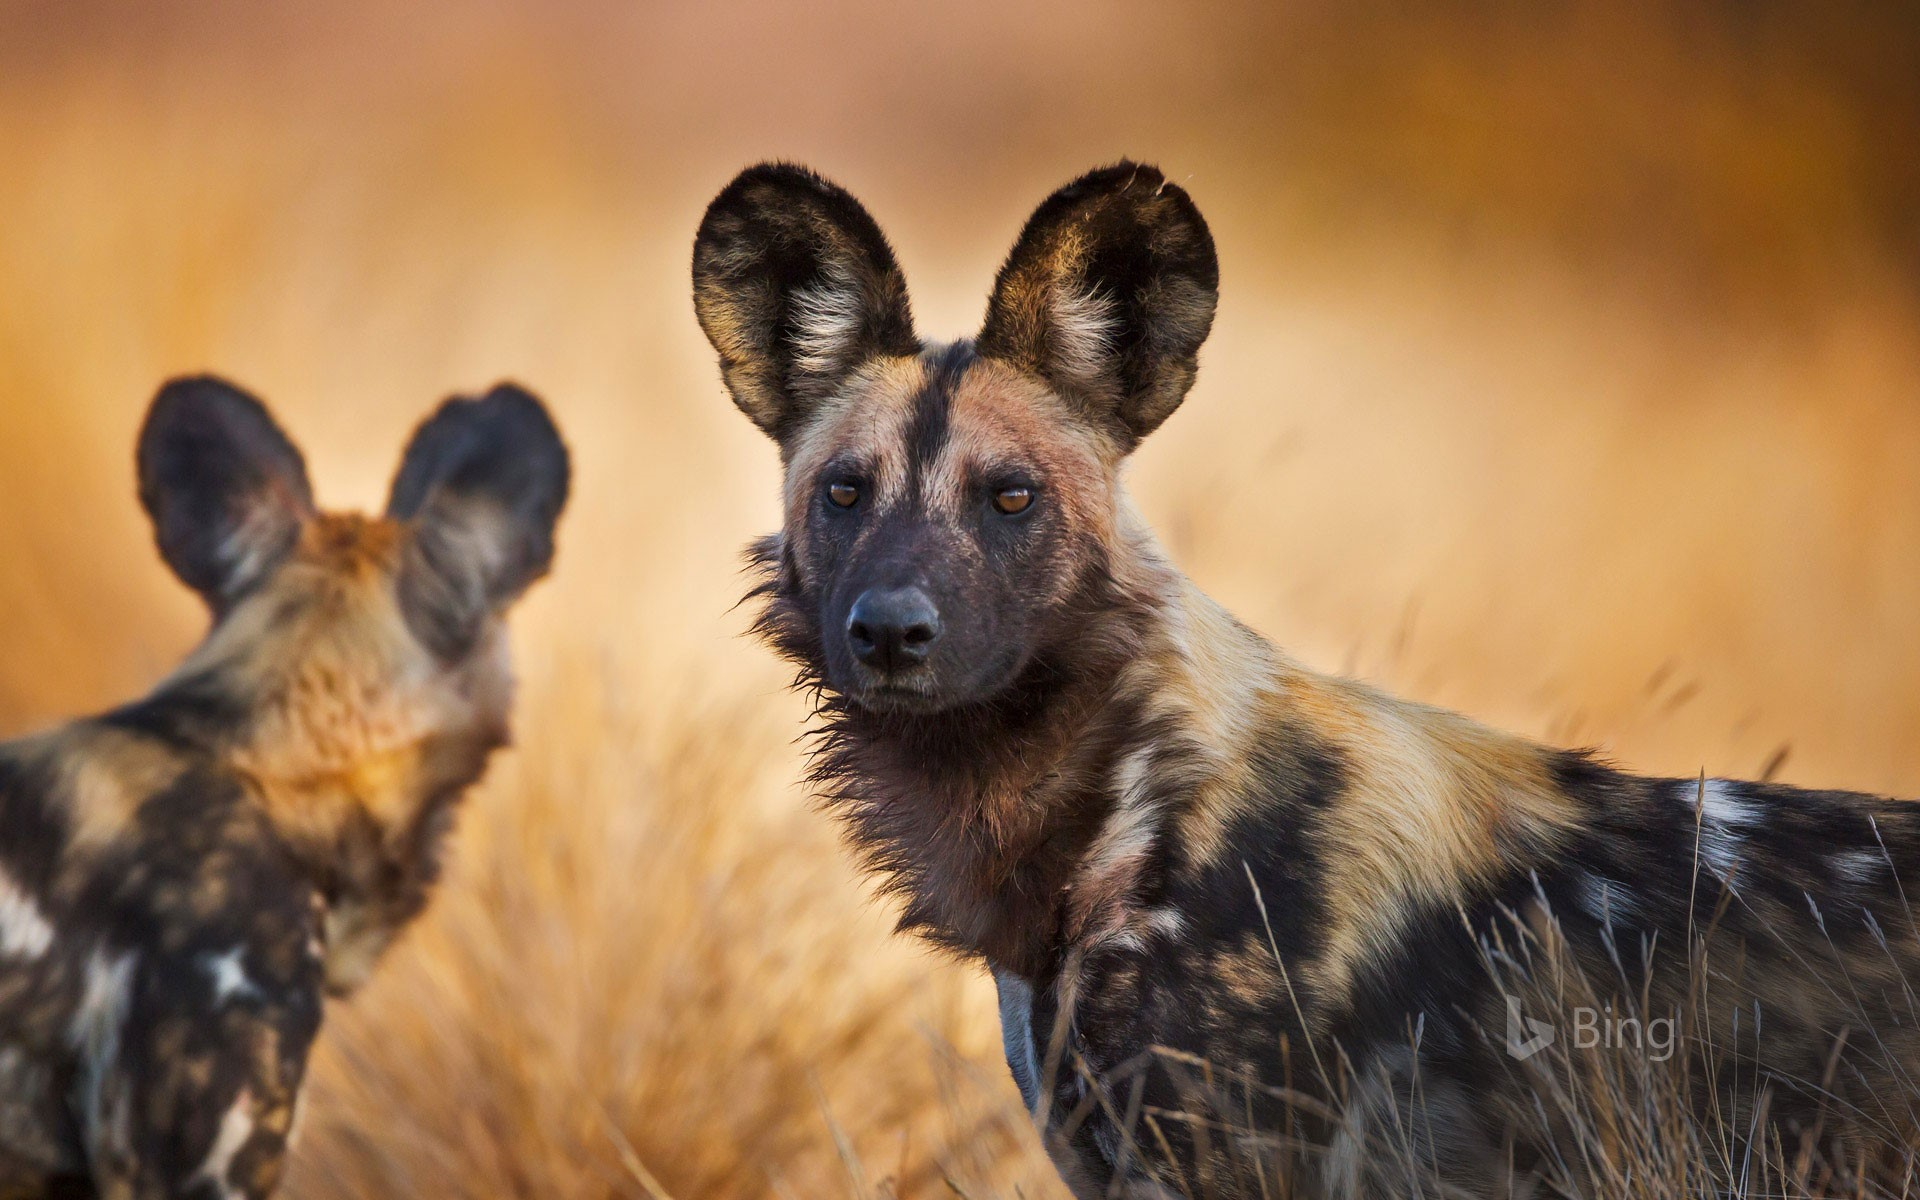 African wild dogs in Kruger National Park, South Africa (© Richard Du Toit/Minden Pictures)